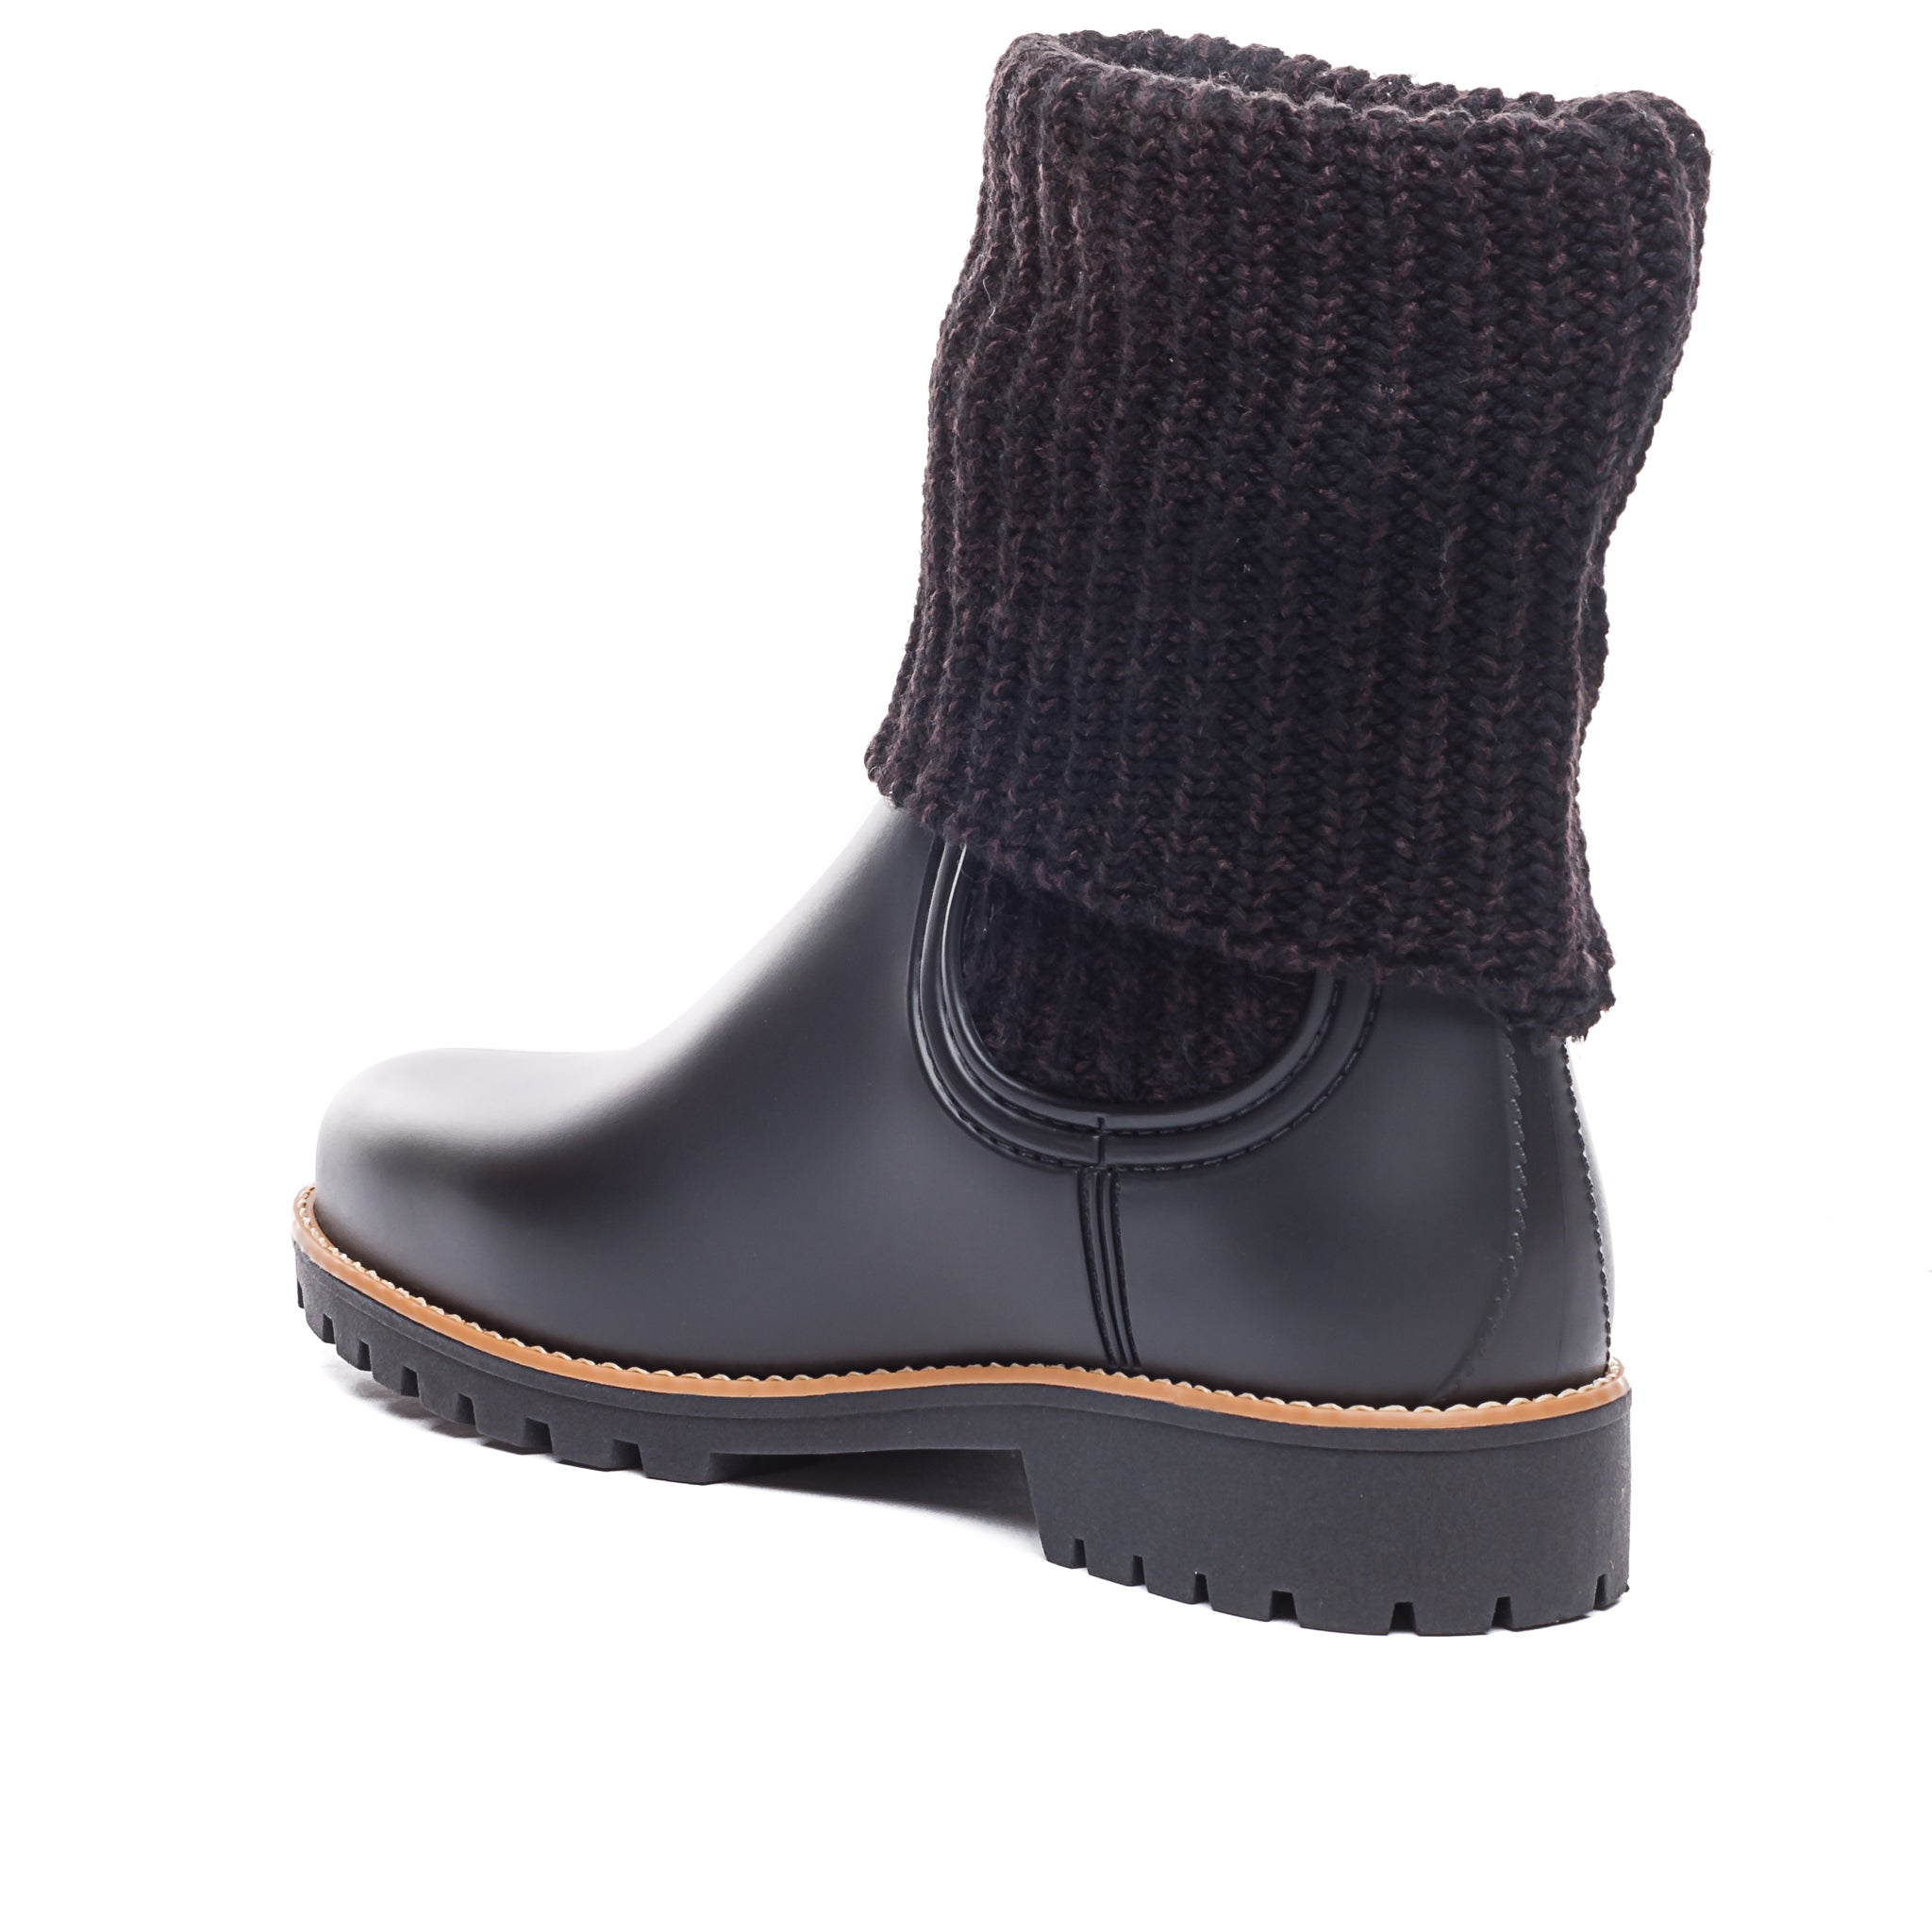 Zurich Rain Boot in Black